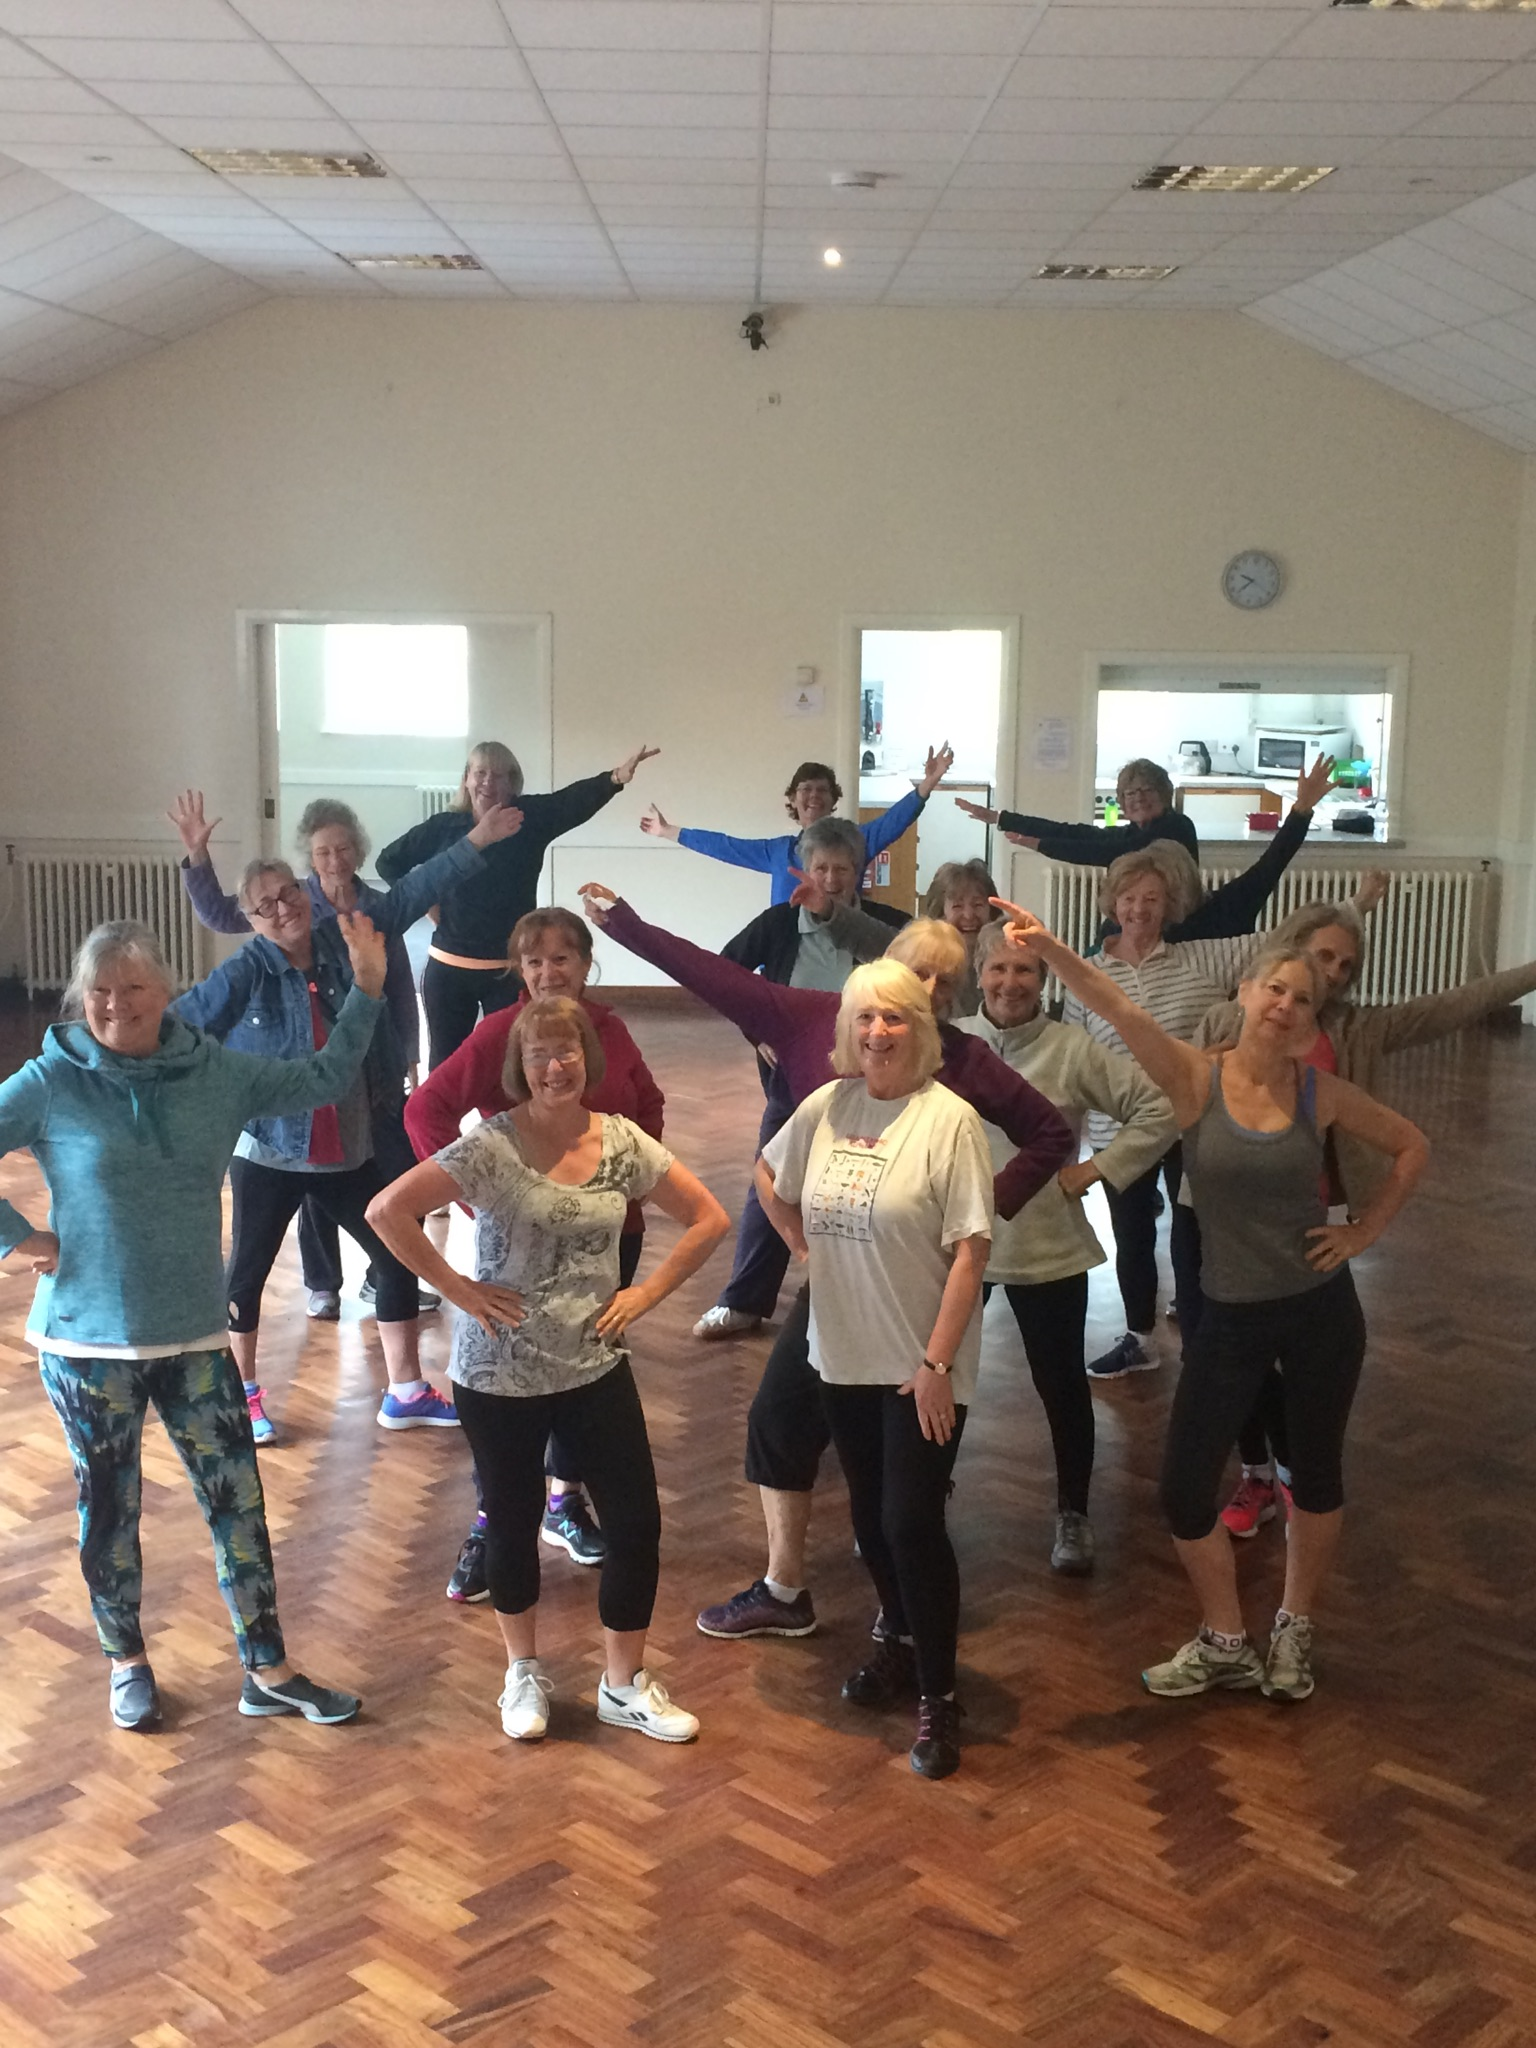 photo of people enjoying Zumba